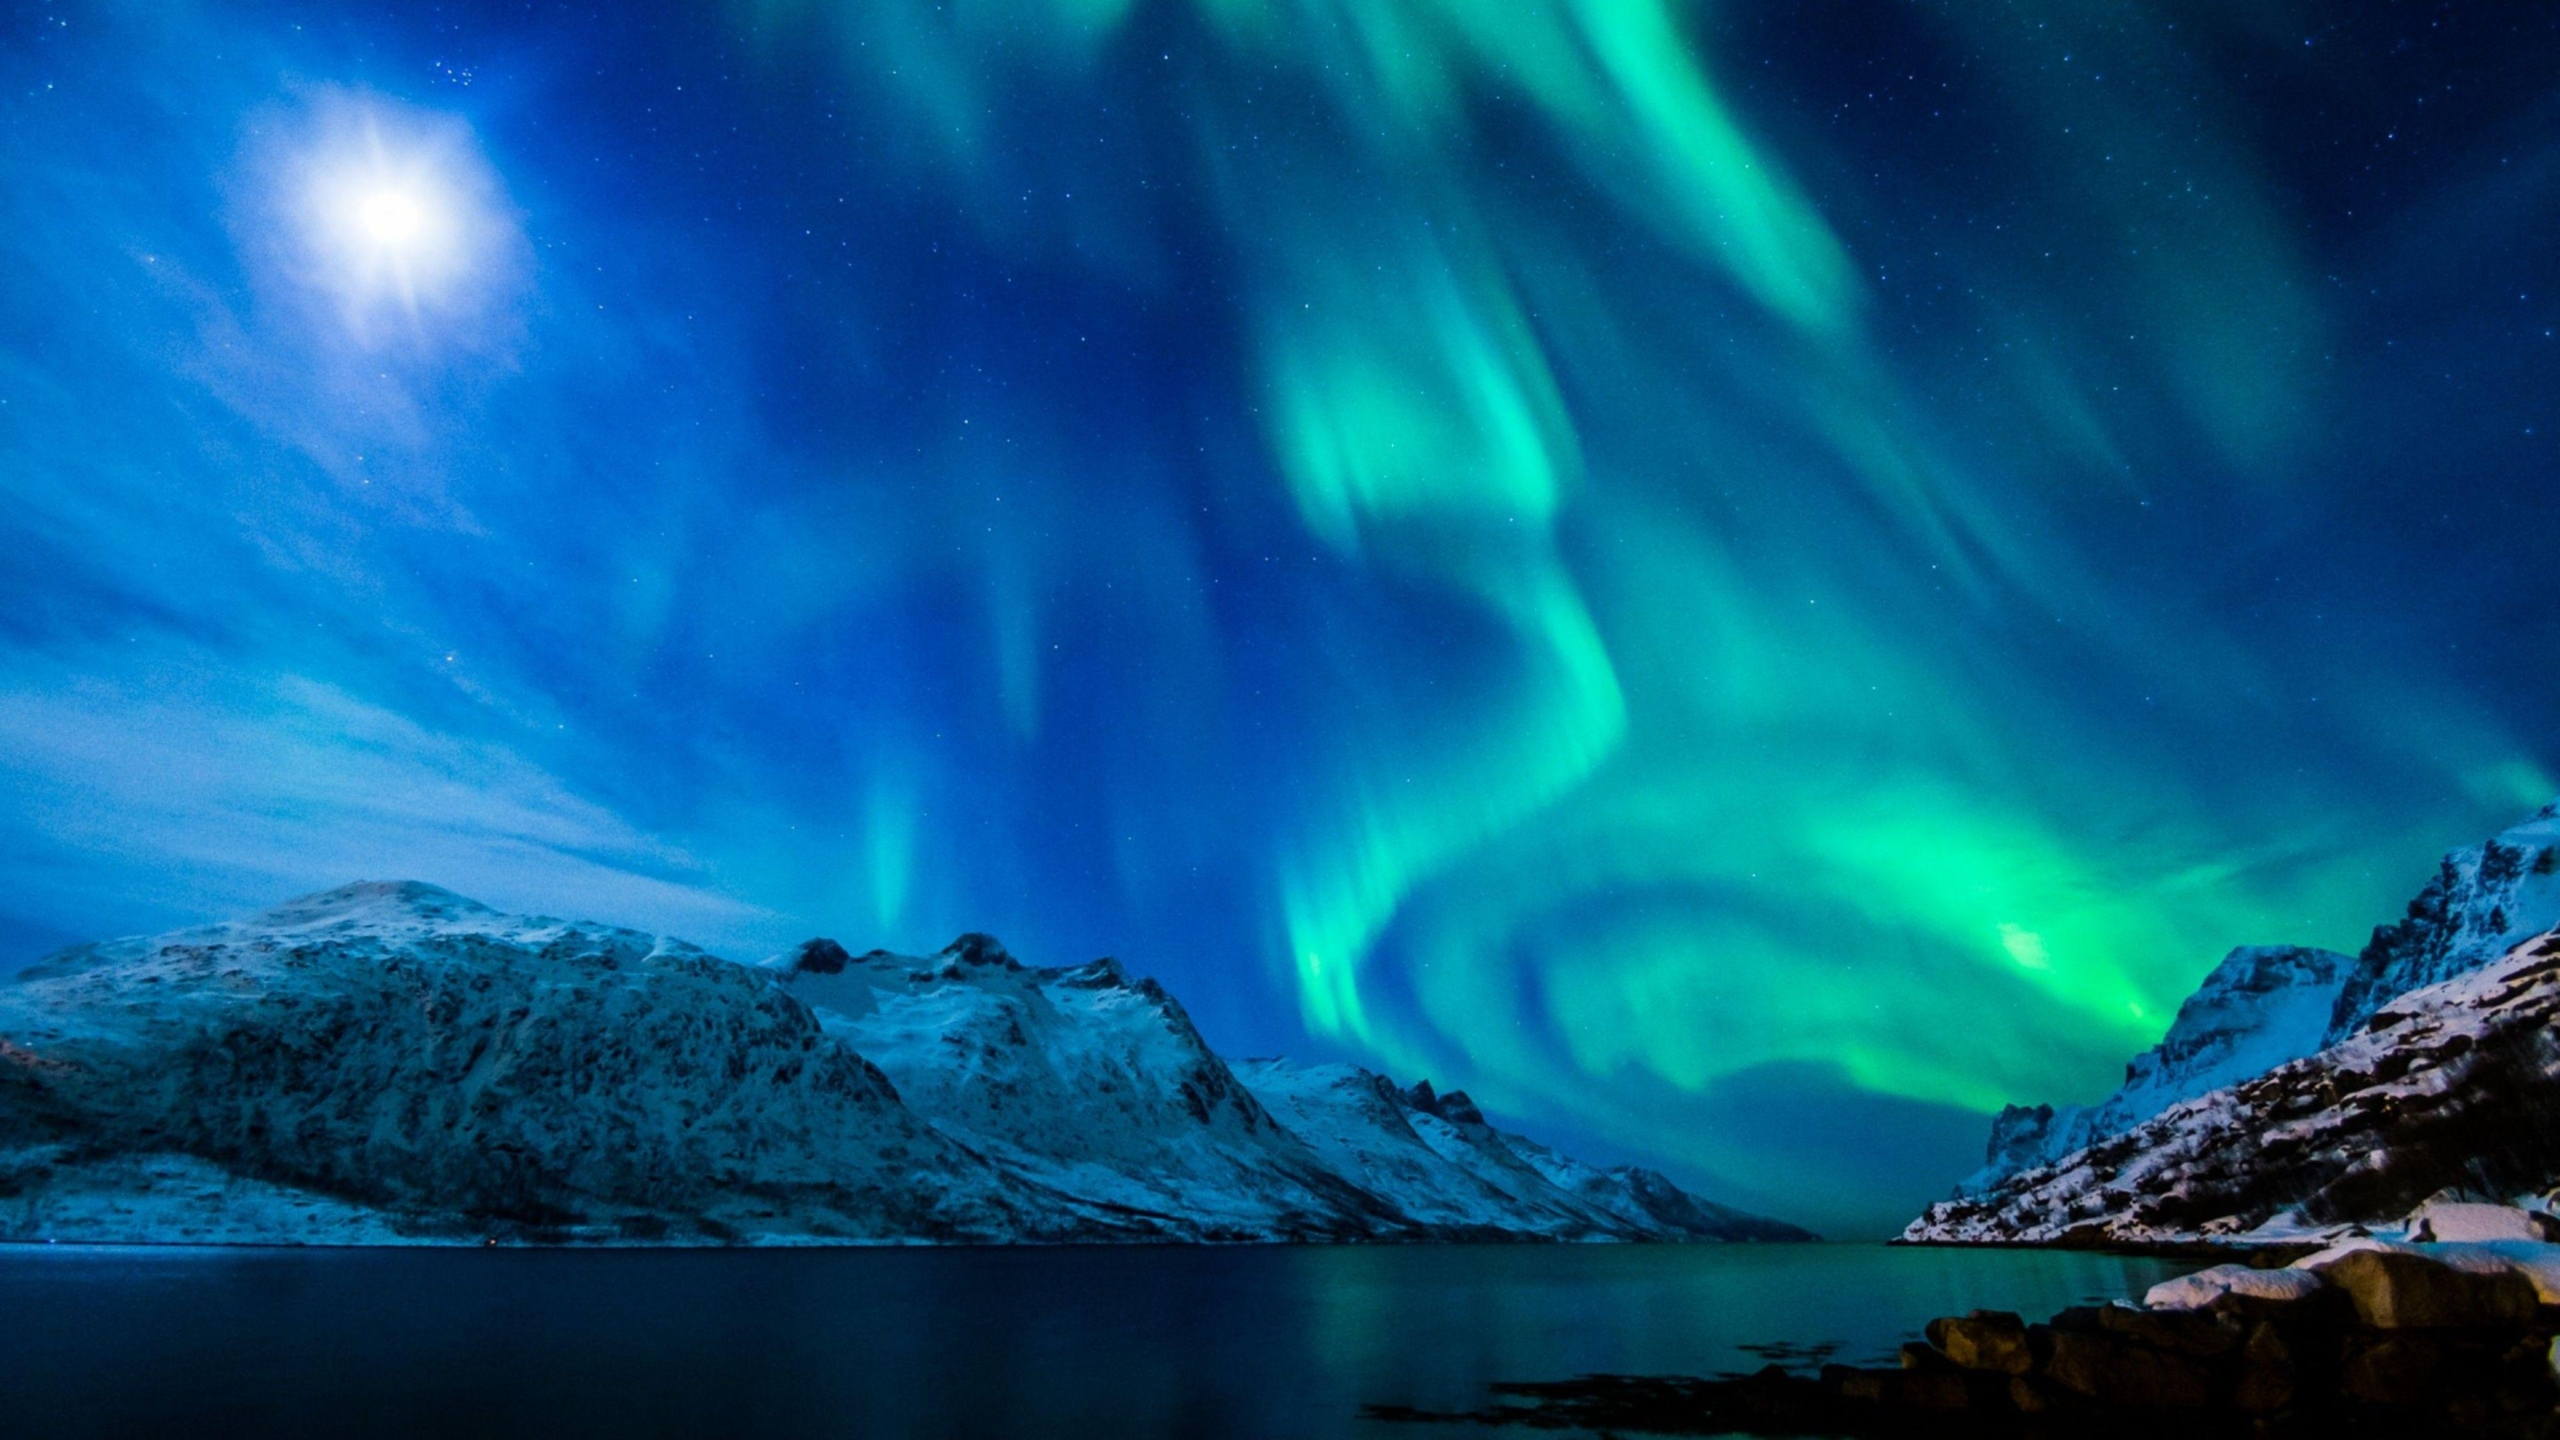 Aurora Boreal wallpaper – The Latest Picture design For Your Computer